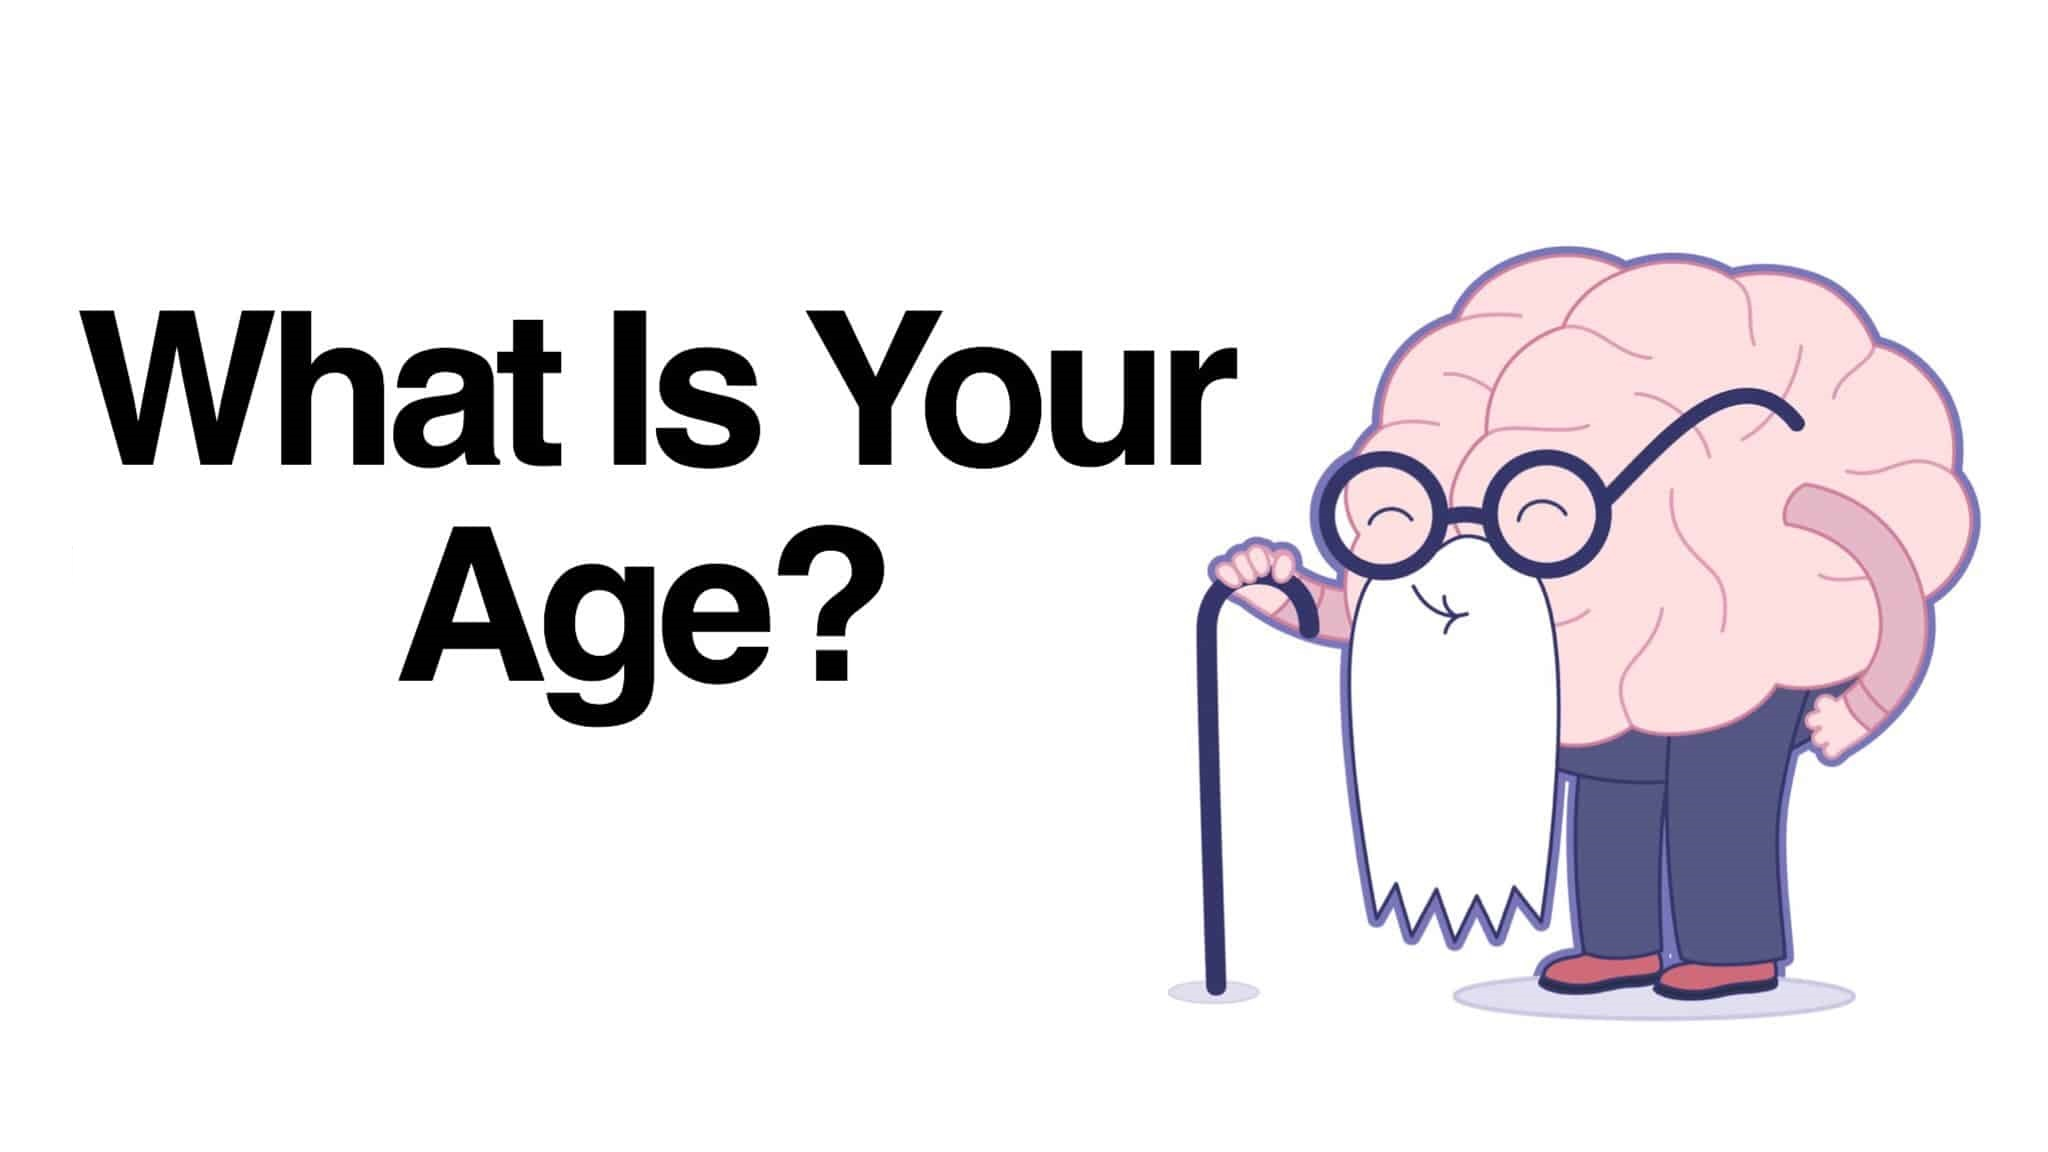 Your age is